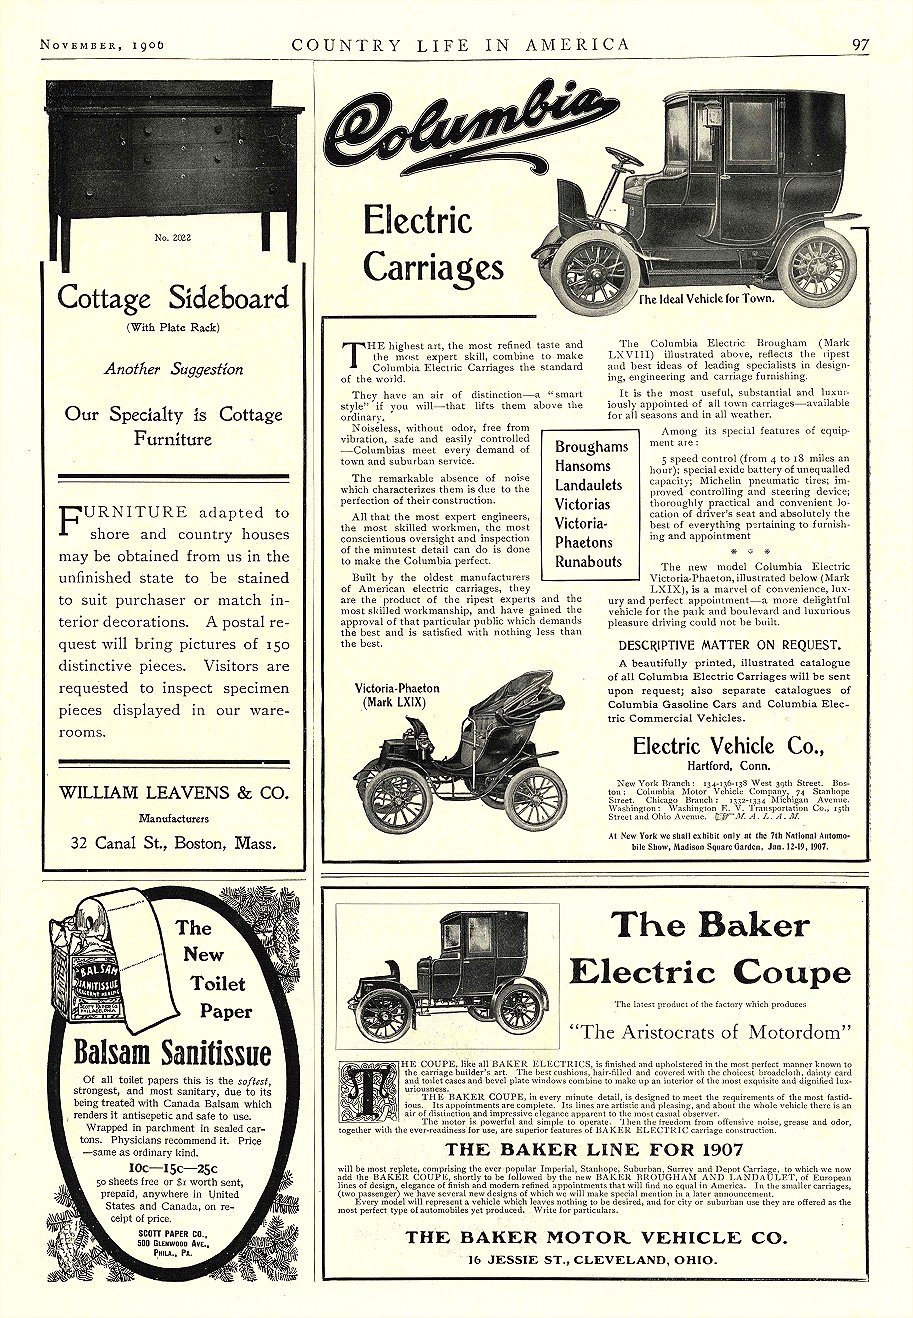 "1906 11 BAKER Electric ""The Aristocrats of Motordom"" THE BAKER MOTOR VEHICLE CO. Cleveland, OHIO COUNTRY LIFE IN AMERICA November 1906 10″x14.25″ page 97"